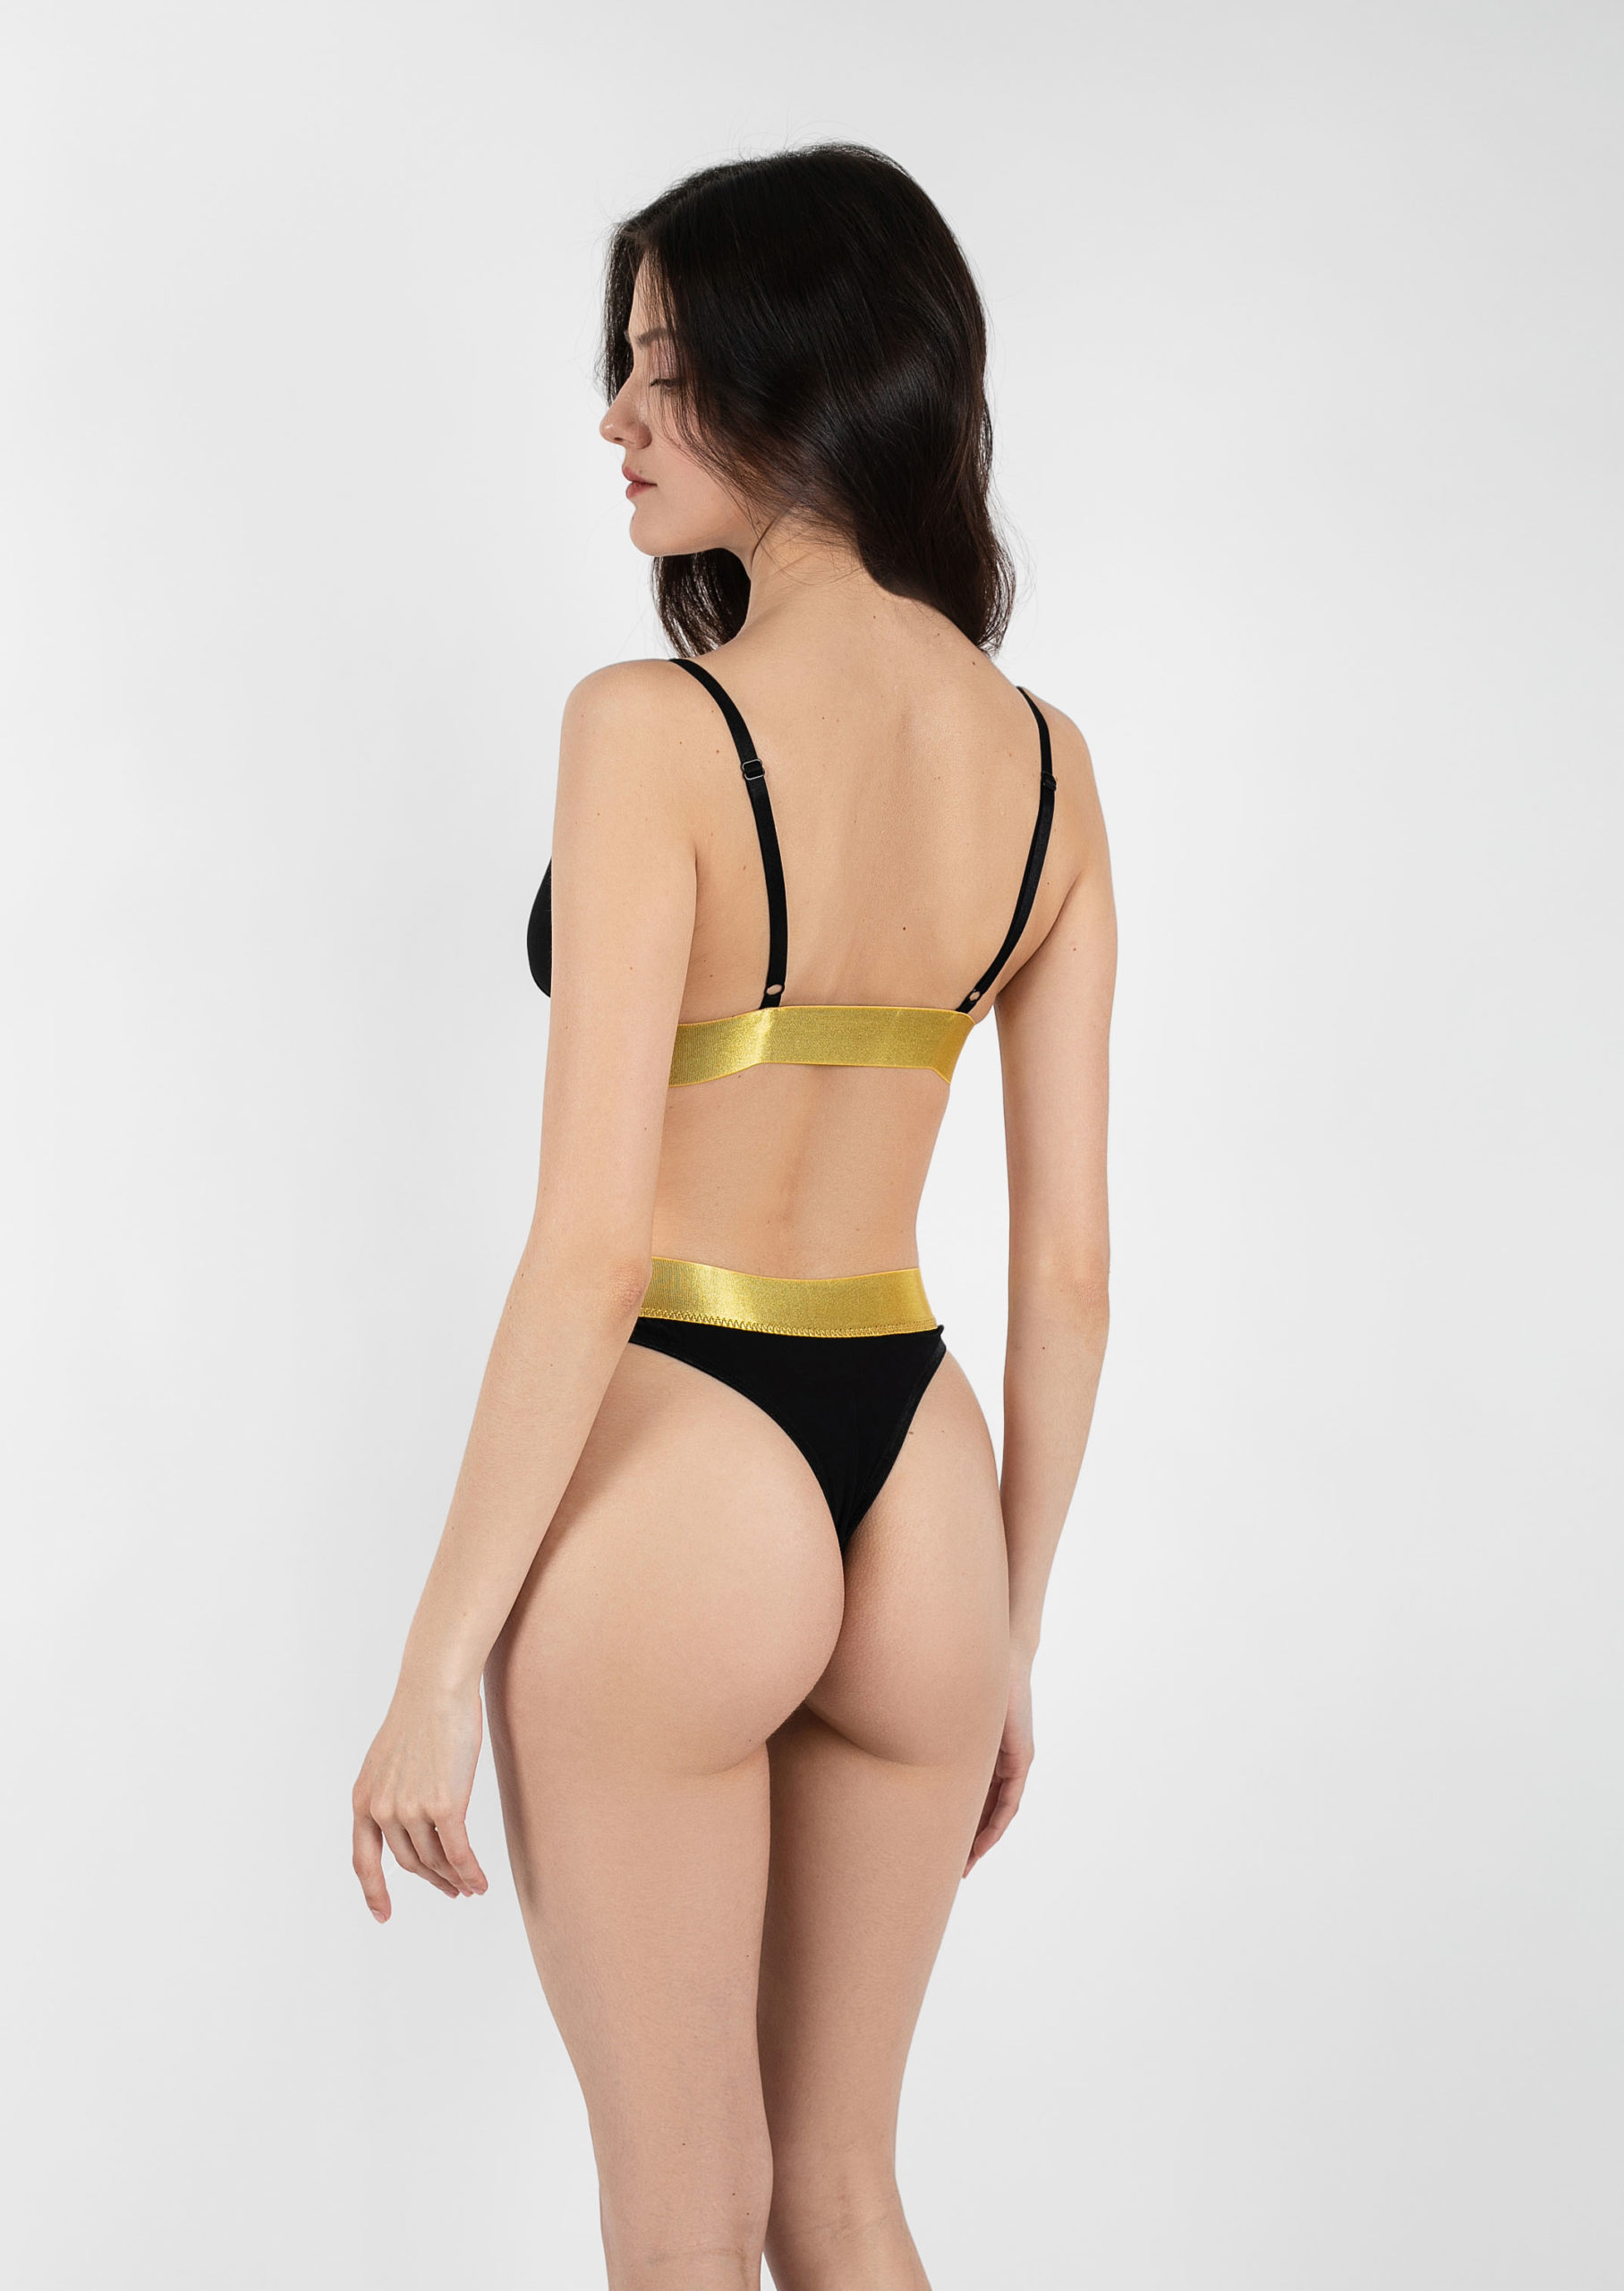 Gold line lingerie set / sexy cotton golden black lingerie / organic non wired bra with high or low waist panties / erotic pure underwear